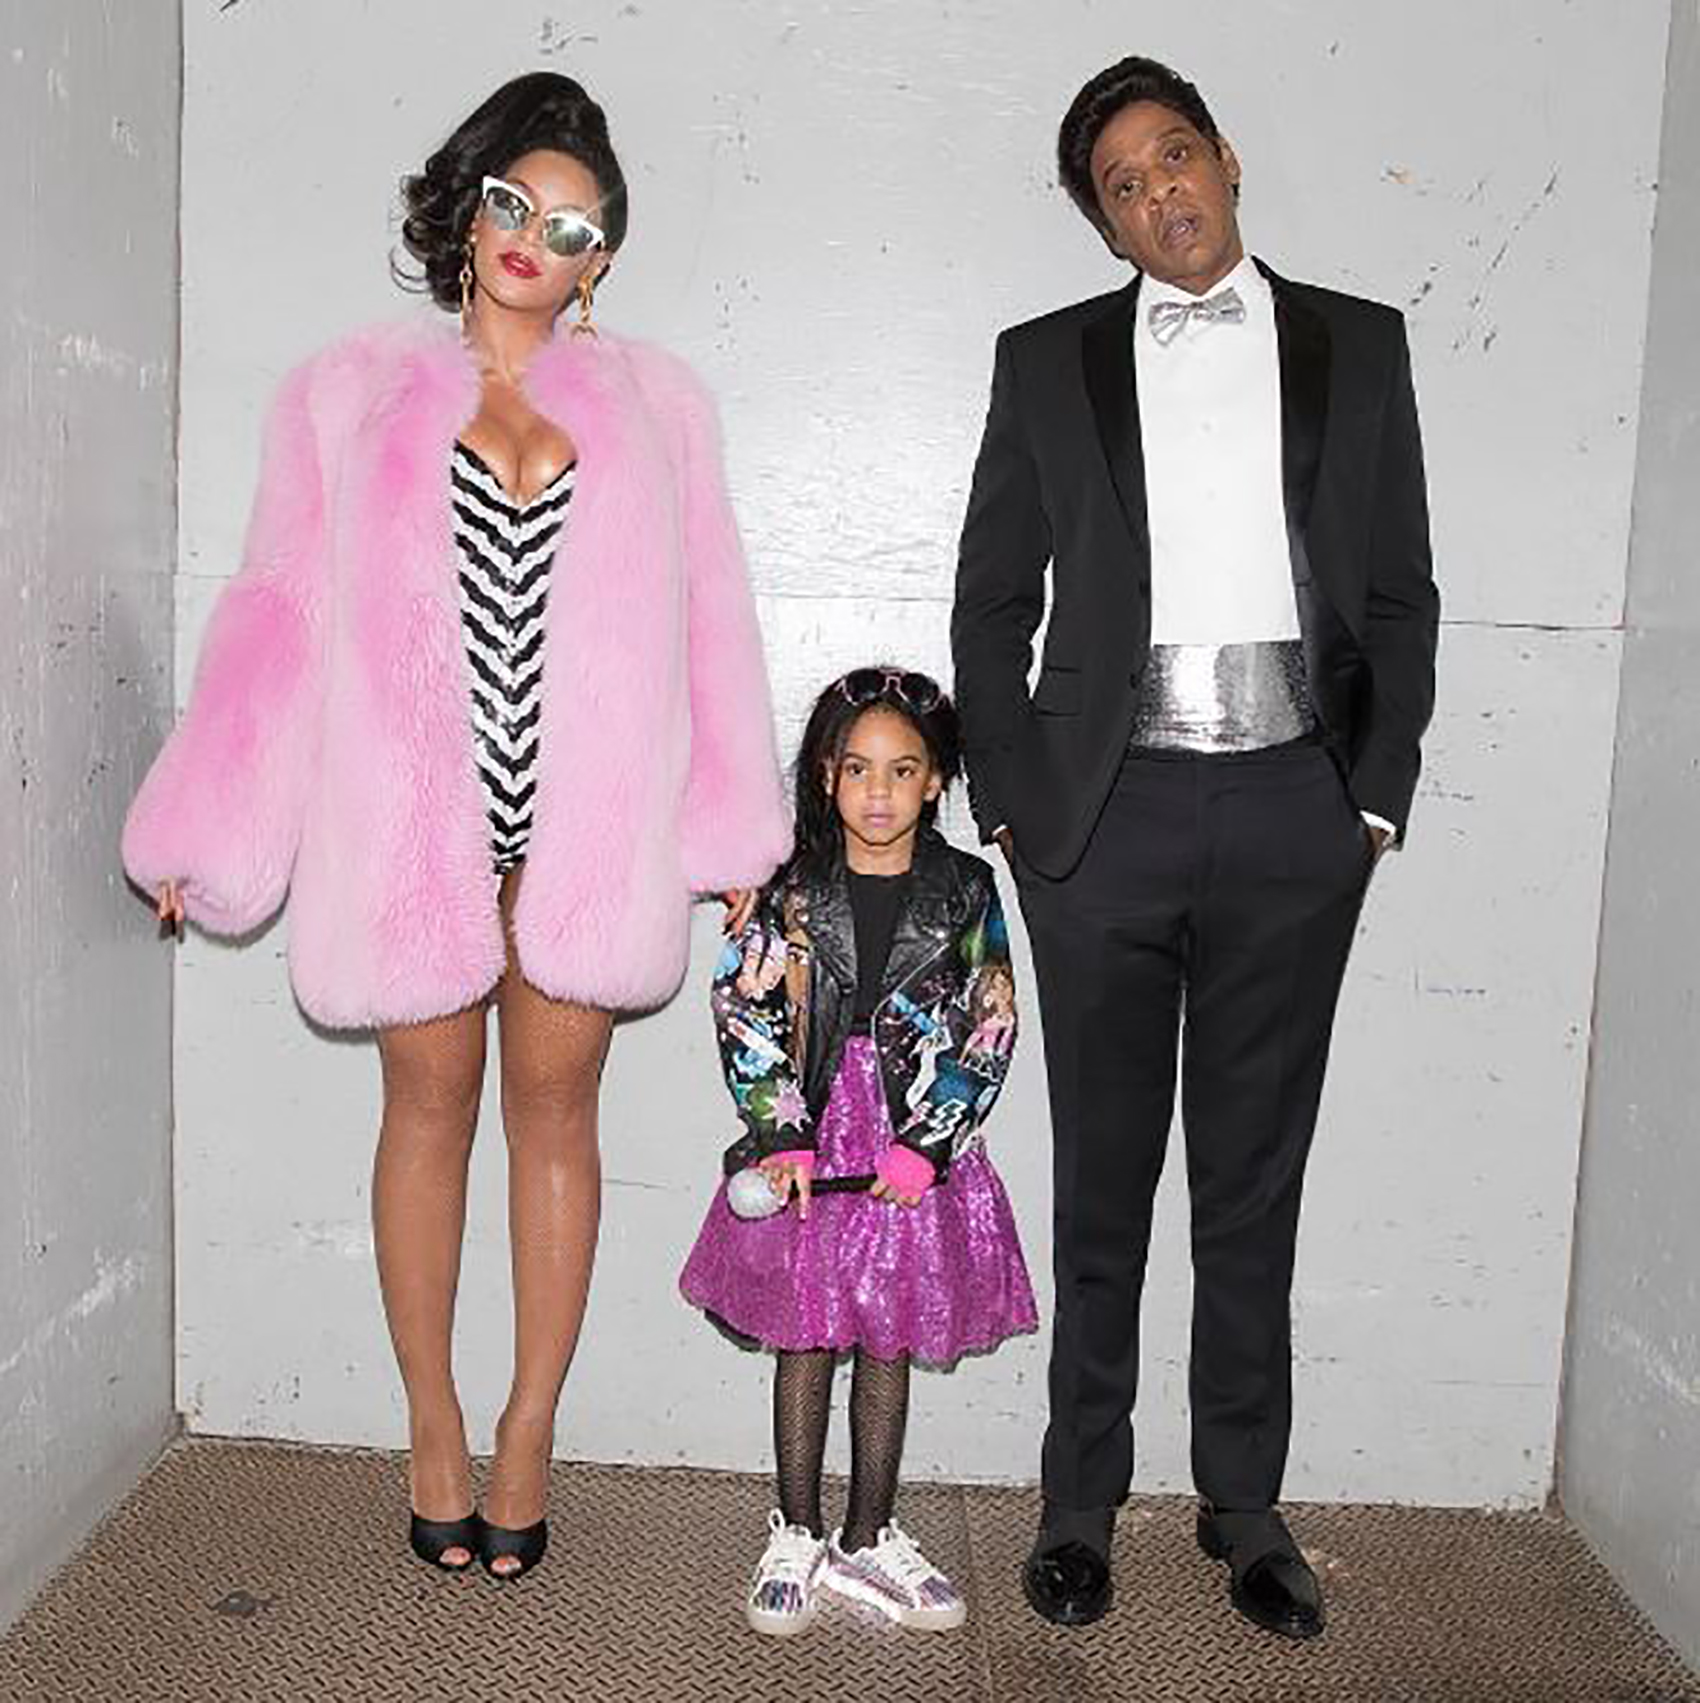 29 of the Best Celebrity Halloween Costumes You'll Ever See